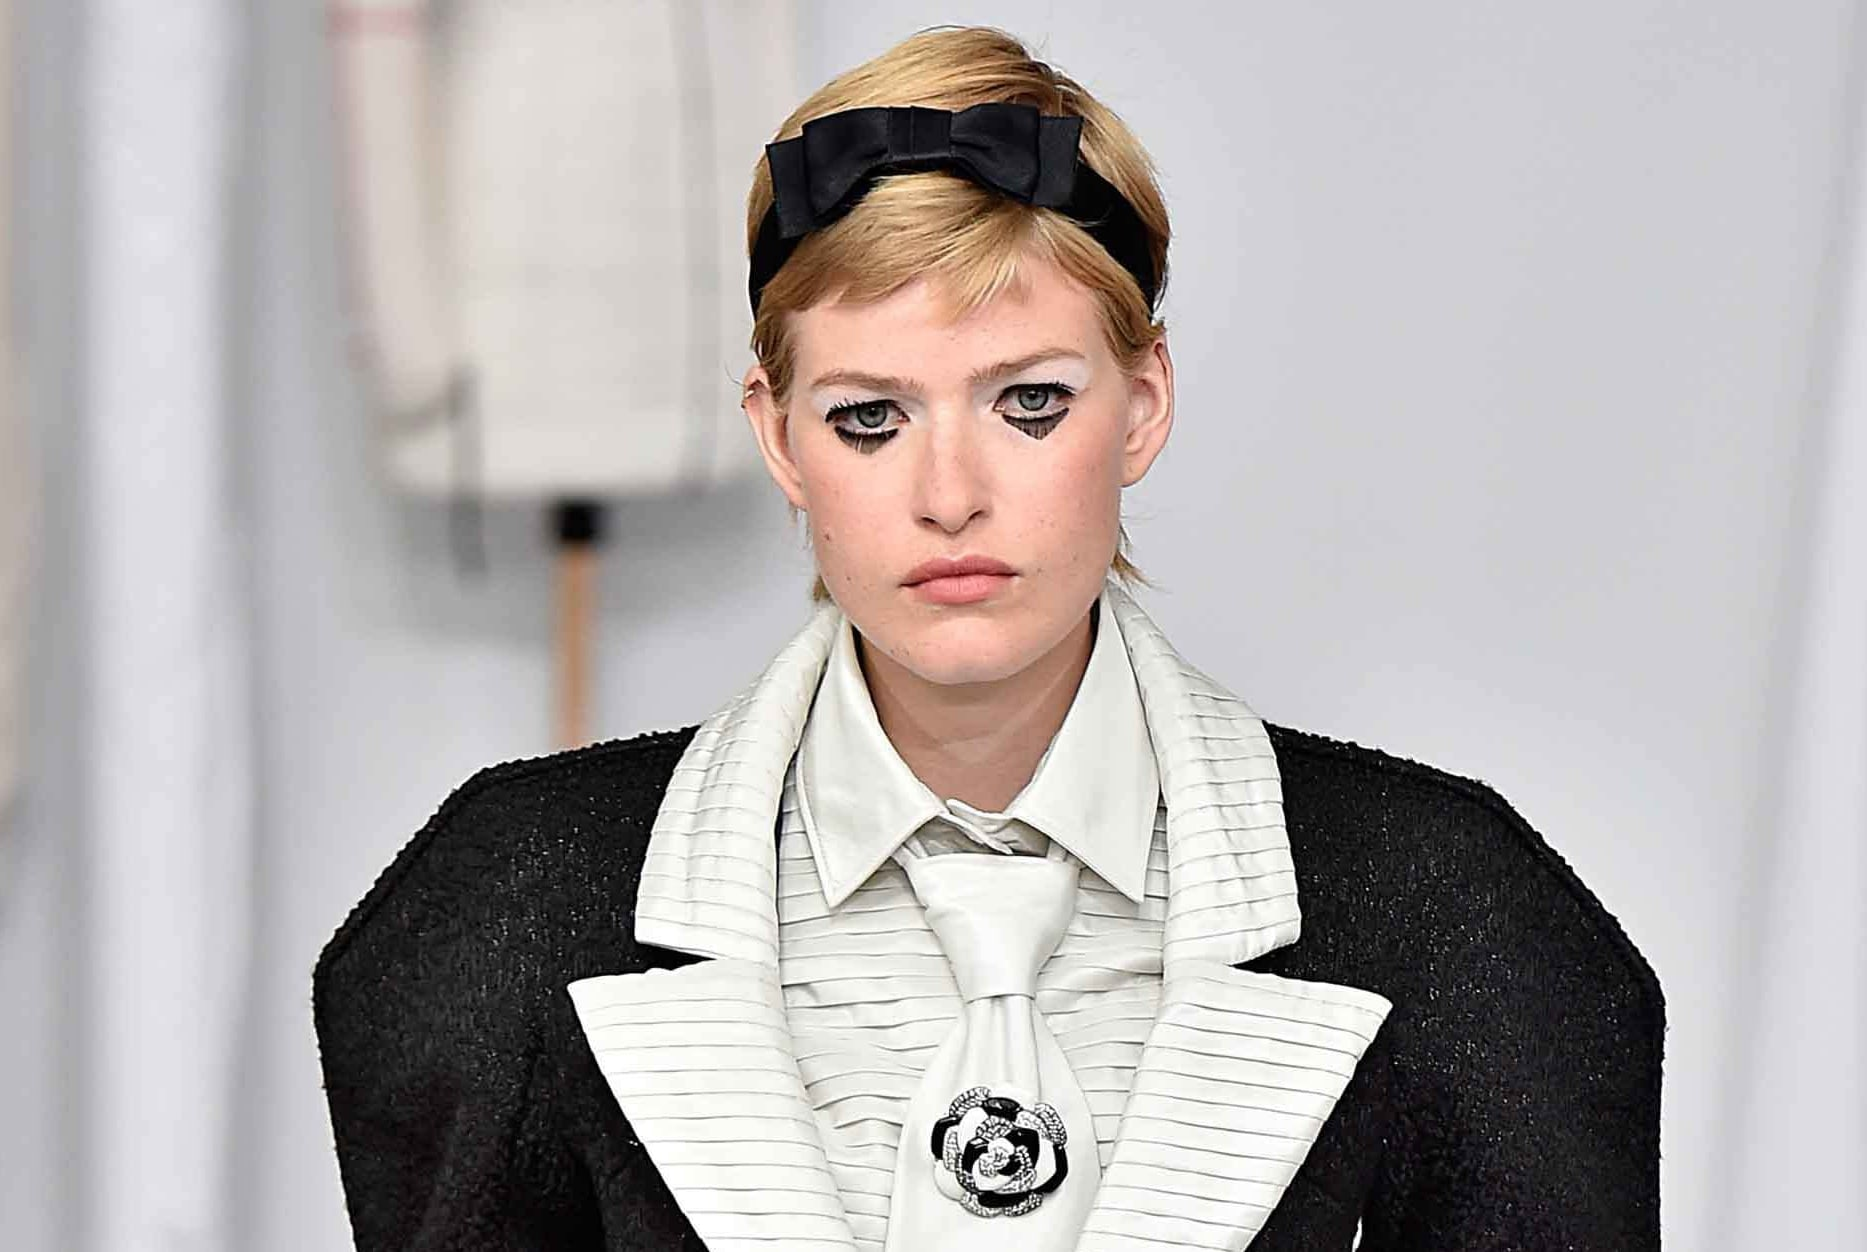 chanel couture aw16 model with a blonde pixie mullet and a black bow headband